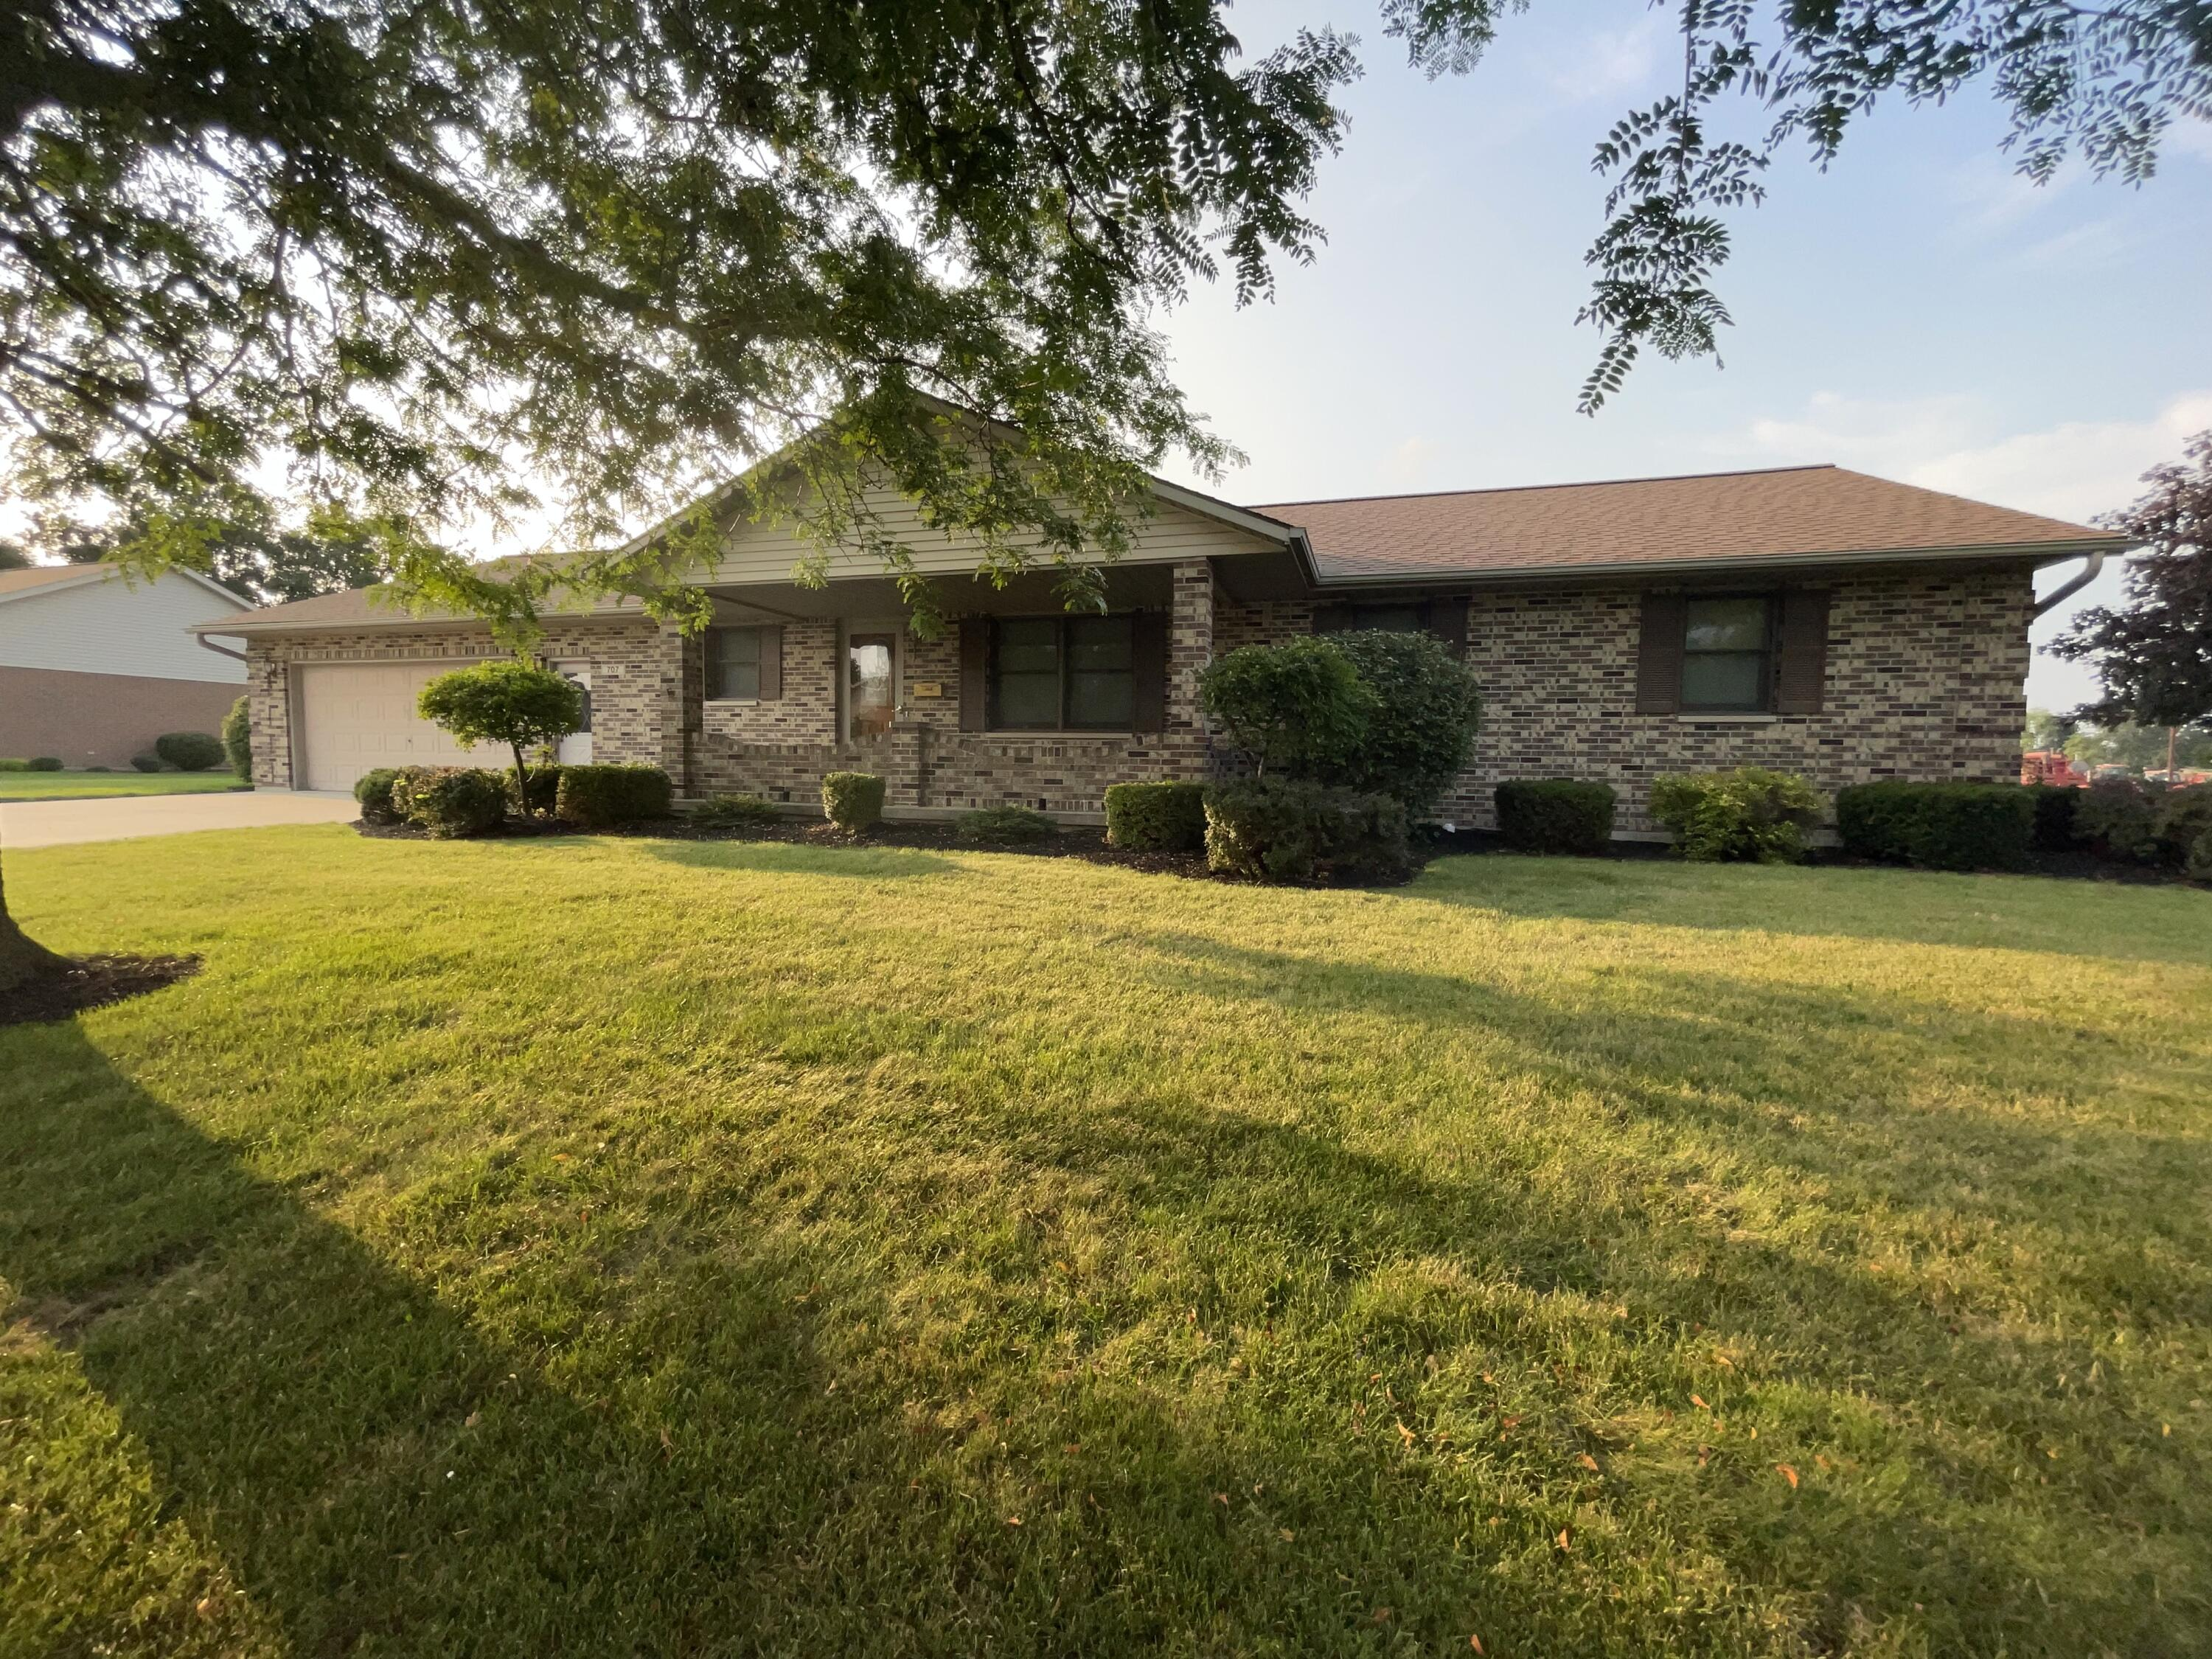 Photo 1 for 707 Blue Jacket Dr Fort Recovery, OH 45846